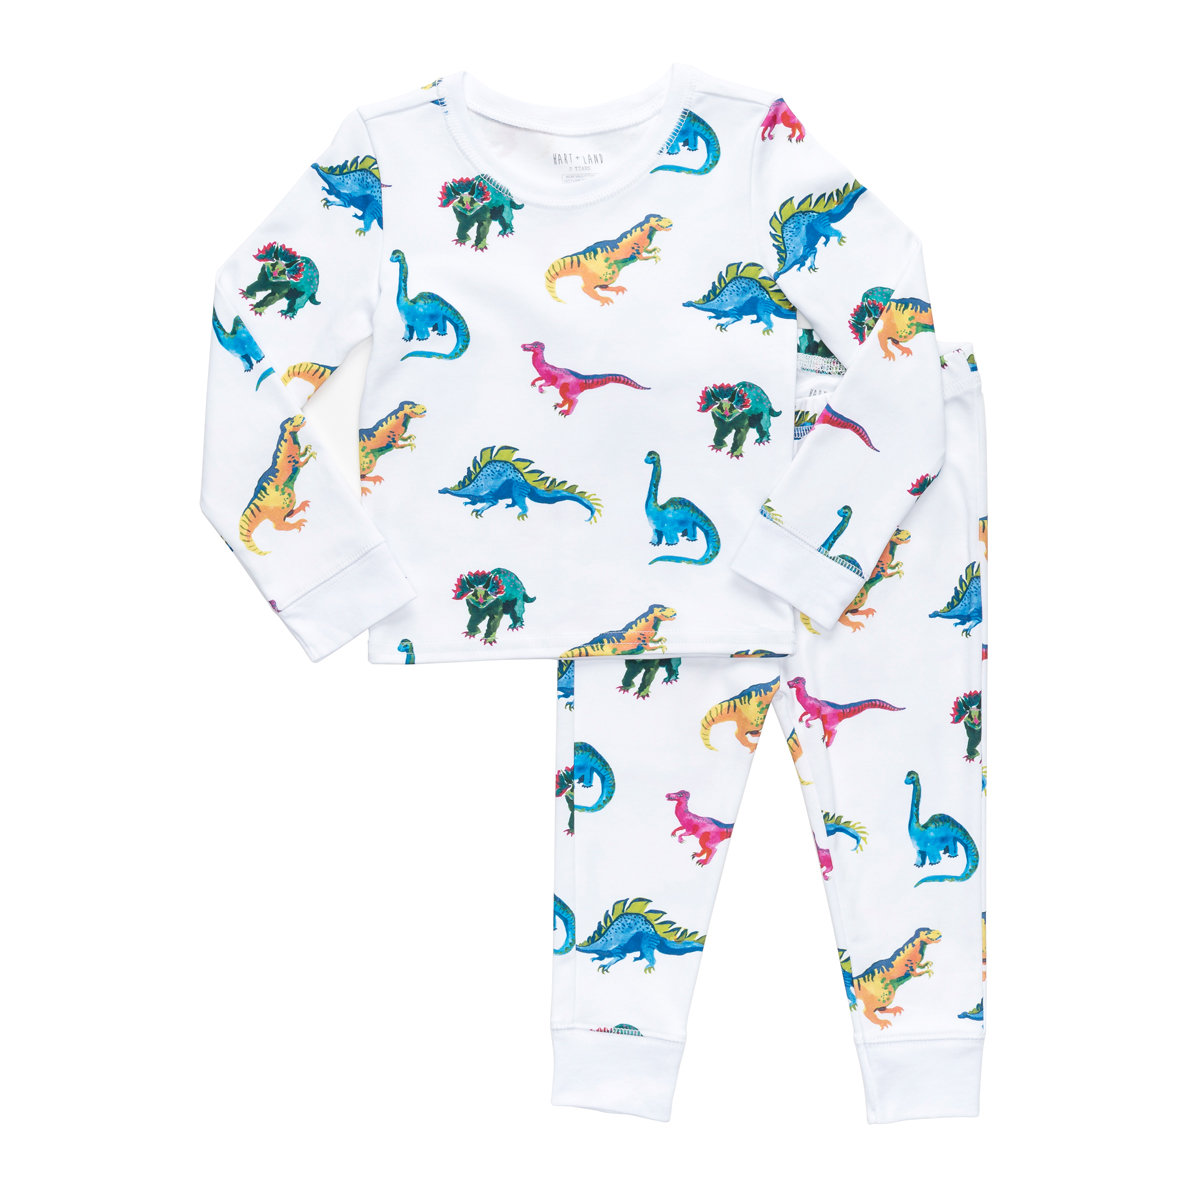 Hart + Land PJ Set in Dinosaur Print